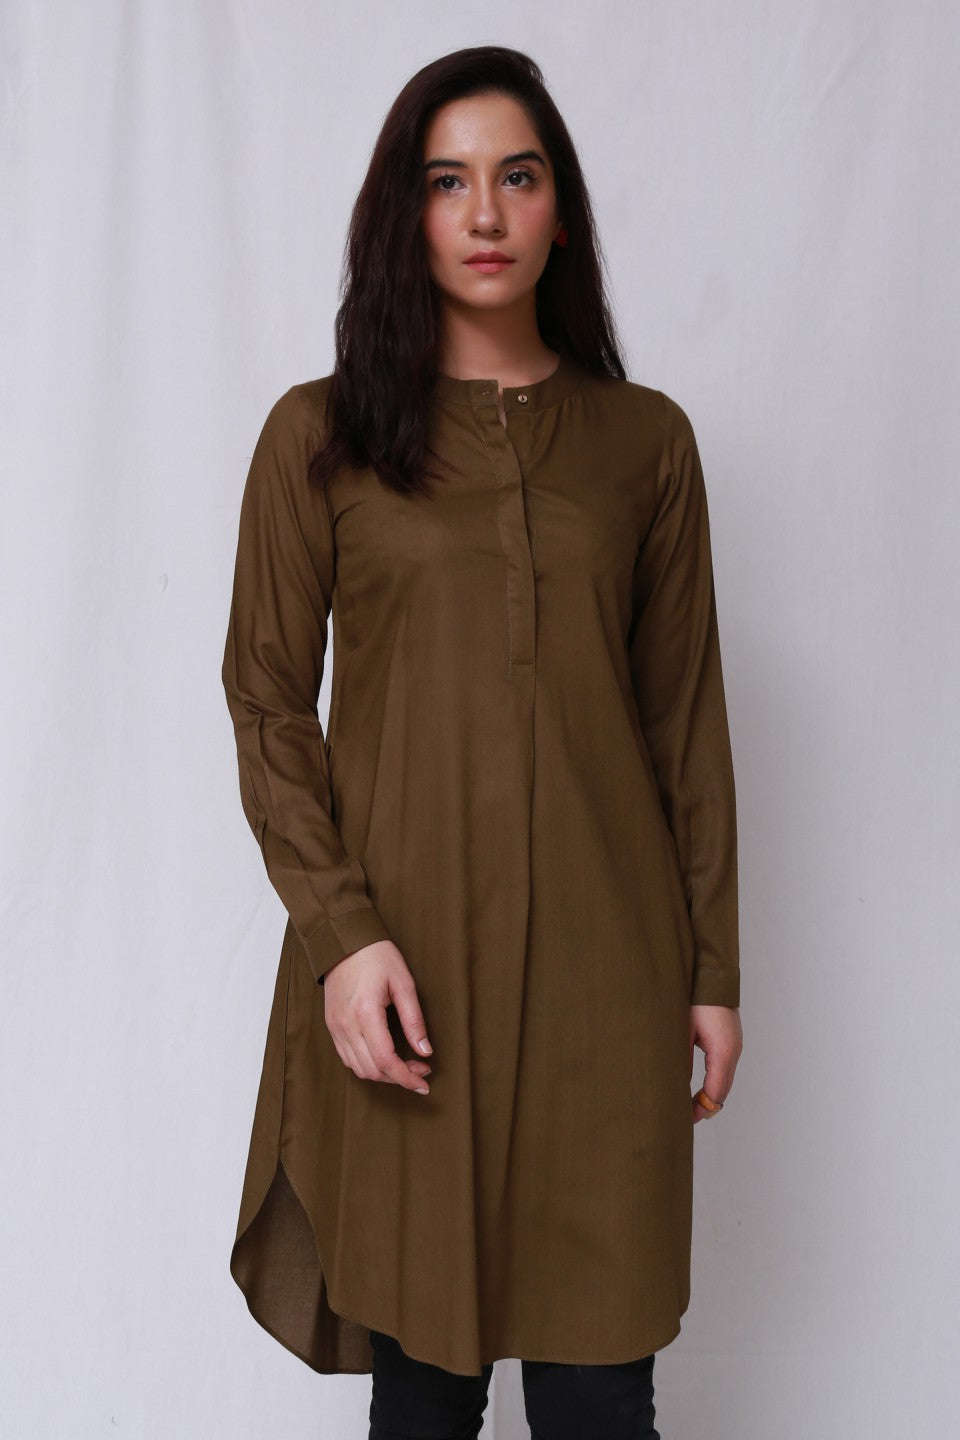 Generation - Brown Global Culture Tunic